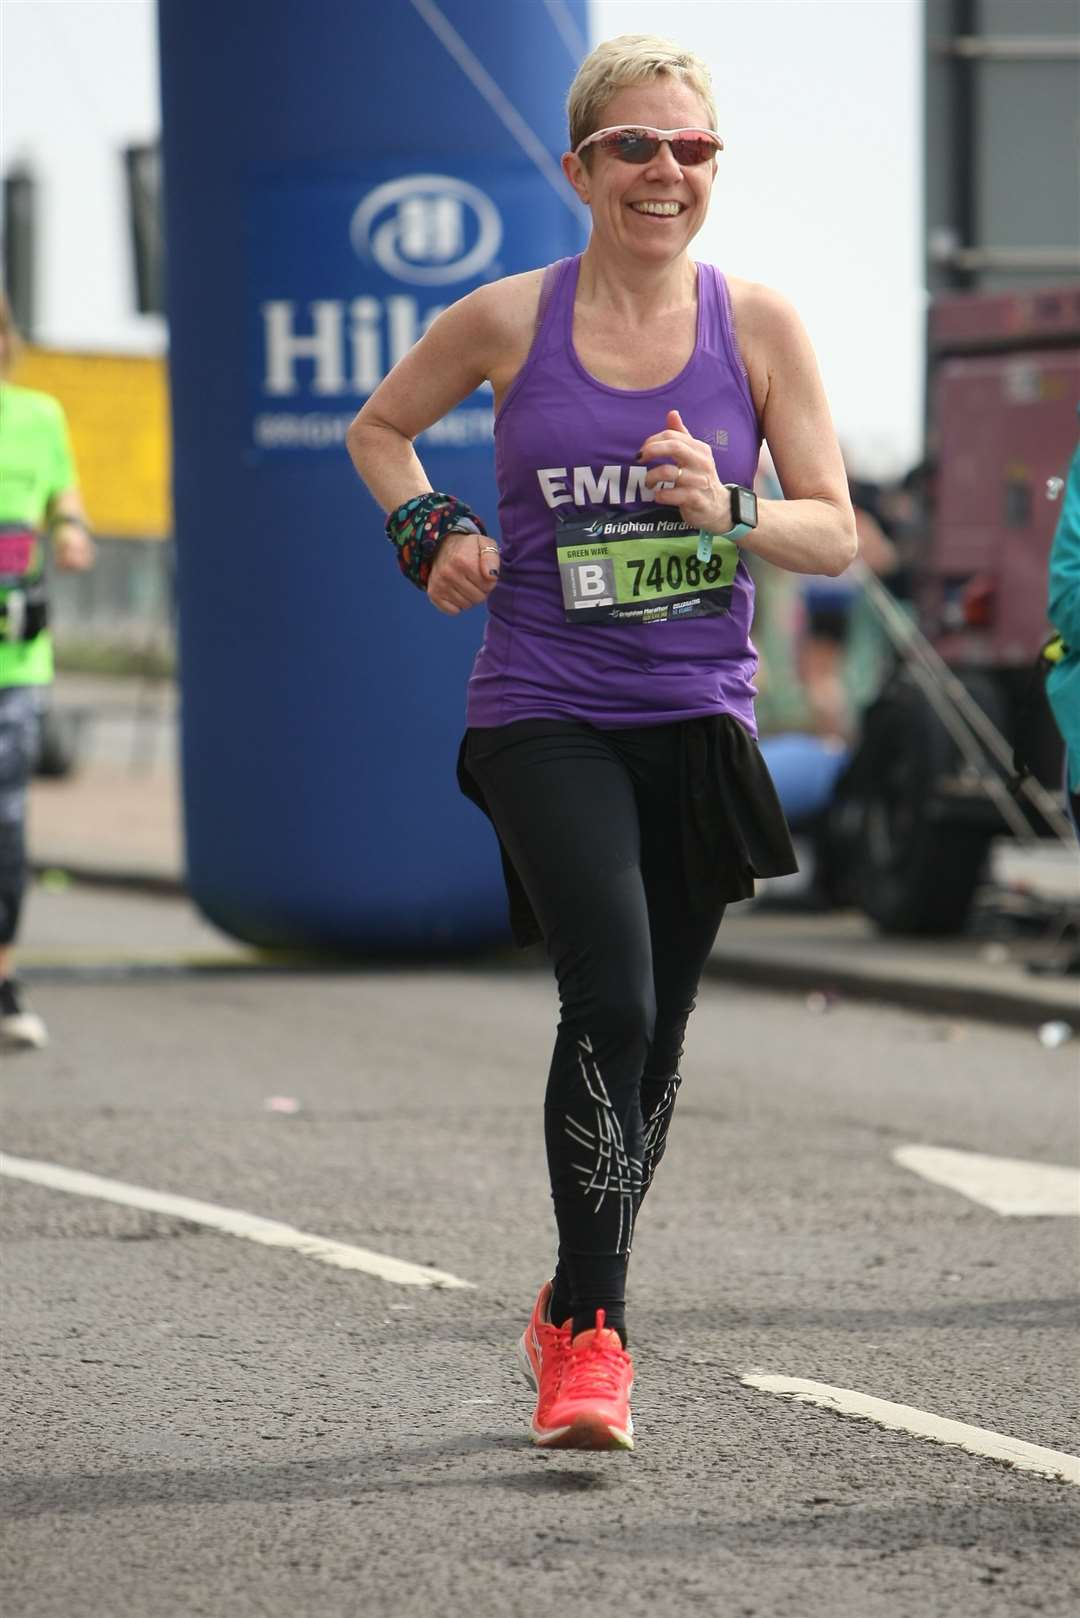 Emma Richbell, of Newton Croft, Sudbury, completed the Brighton Marathon for the first time, in support of the My WiSH charity at West Suffolk Hospital. Contributed picture. (13700113)